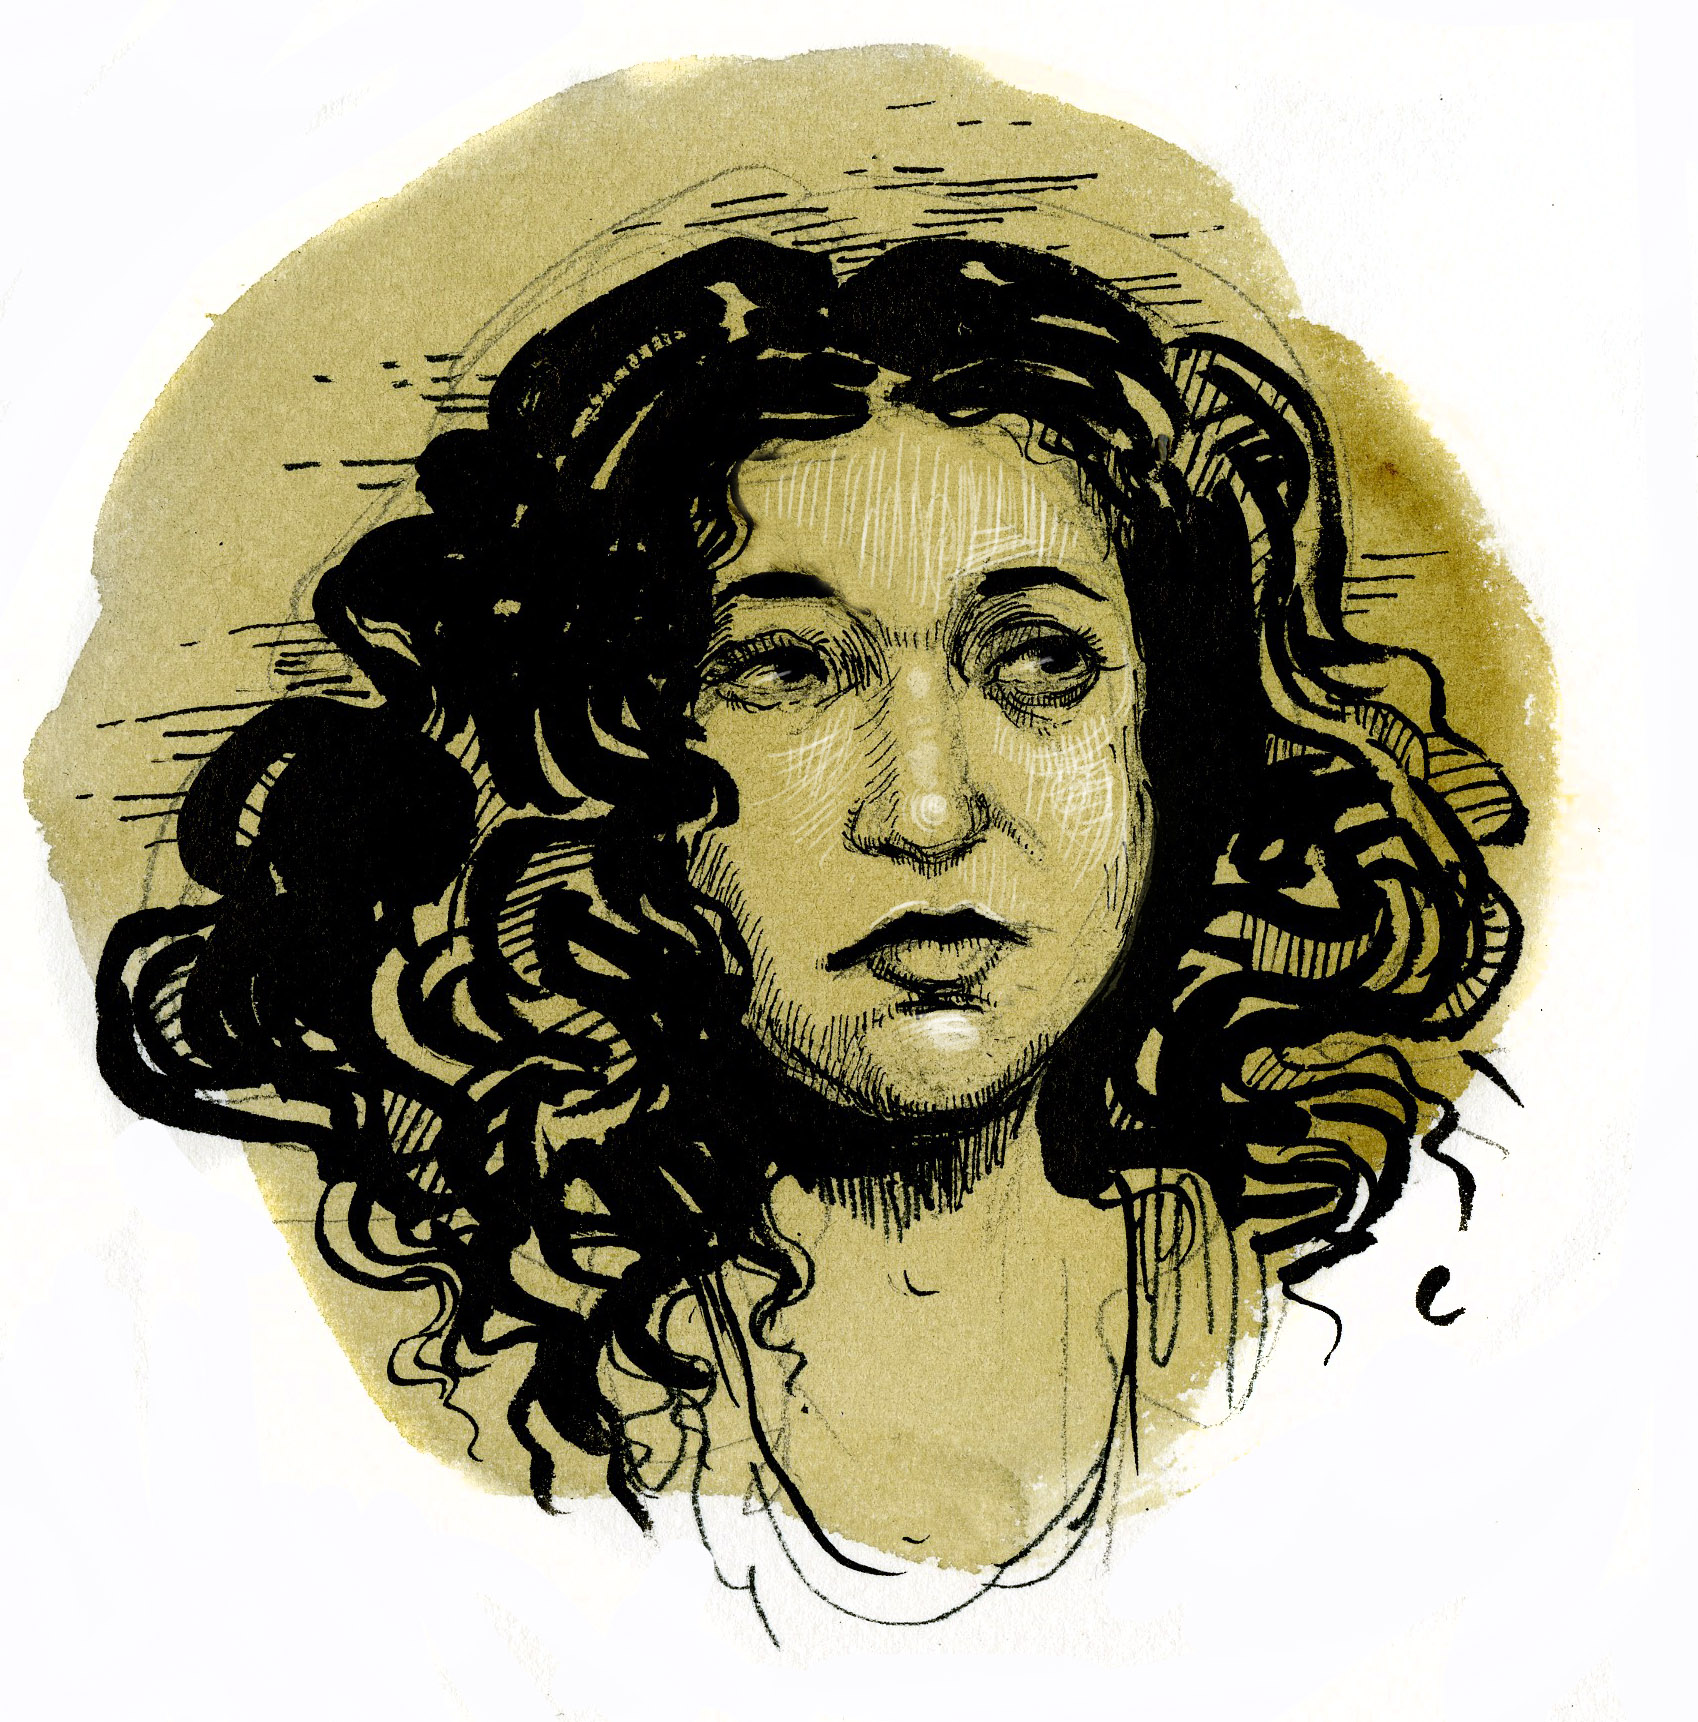 Free-Cecily-McMillan-A-Special-Issue-of-the-Occupy-Gazette